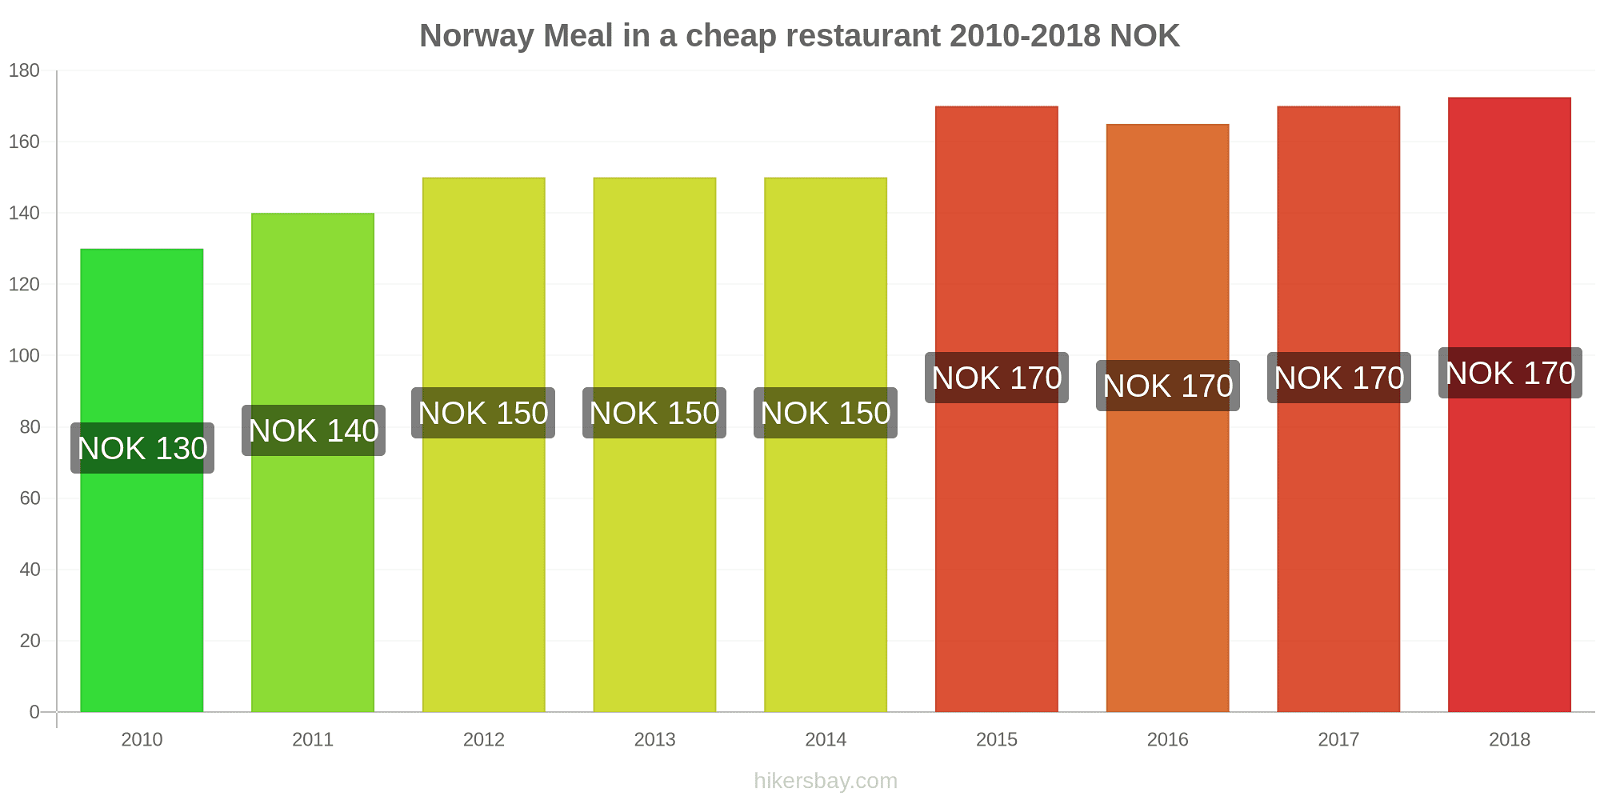 Norway price changes Meal in a cheap restaurant hikersbay.com